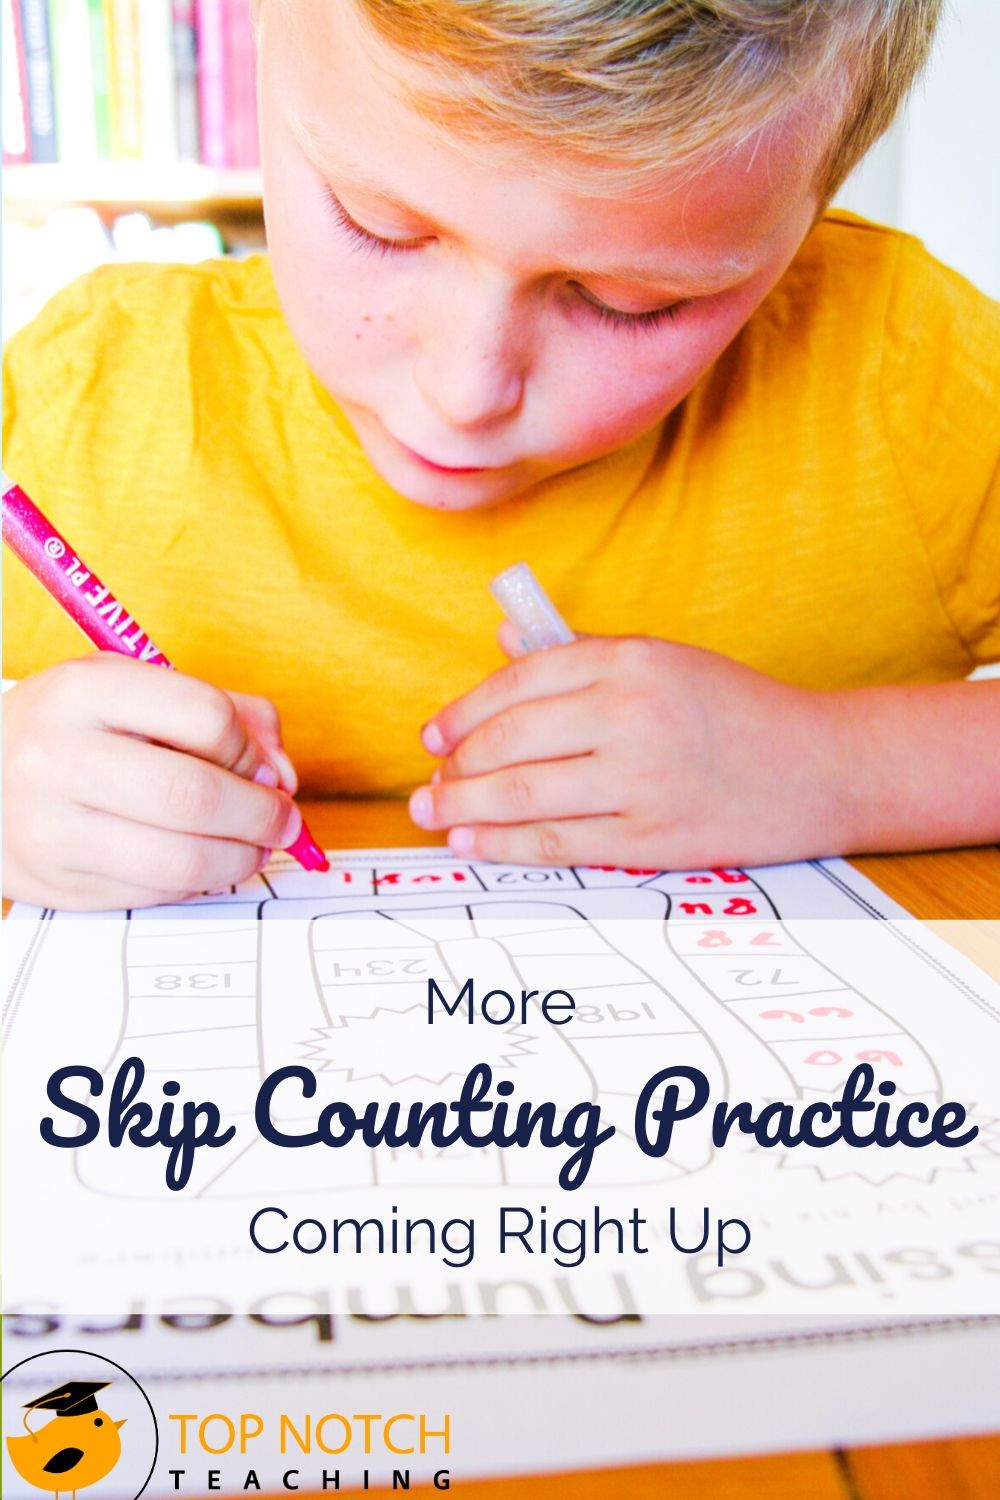 Skip counting is an essential math skill that helps kids develop calculation fluency. It's also a cornerstone for learning multiplication and division. We often start teaching skip counting with 2, 5, and 10 as these are some of the easiest numbers for kids to work with. Even students who seem to catch on to skip counting pretty easily often get caught up with these three things. That's why you can't have too many skip counting tools in your teaching toolbox.